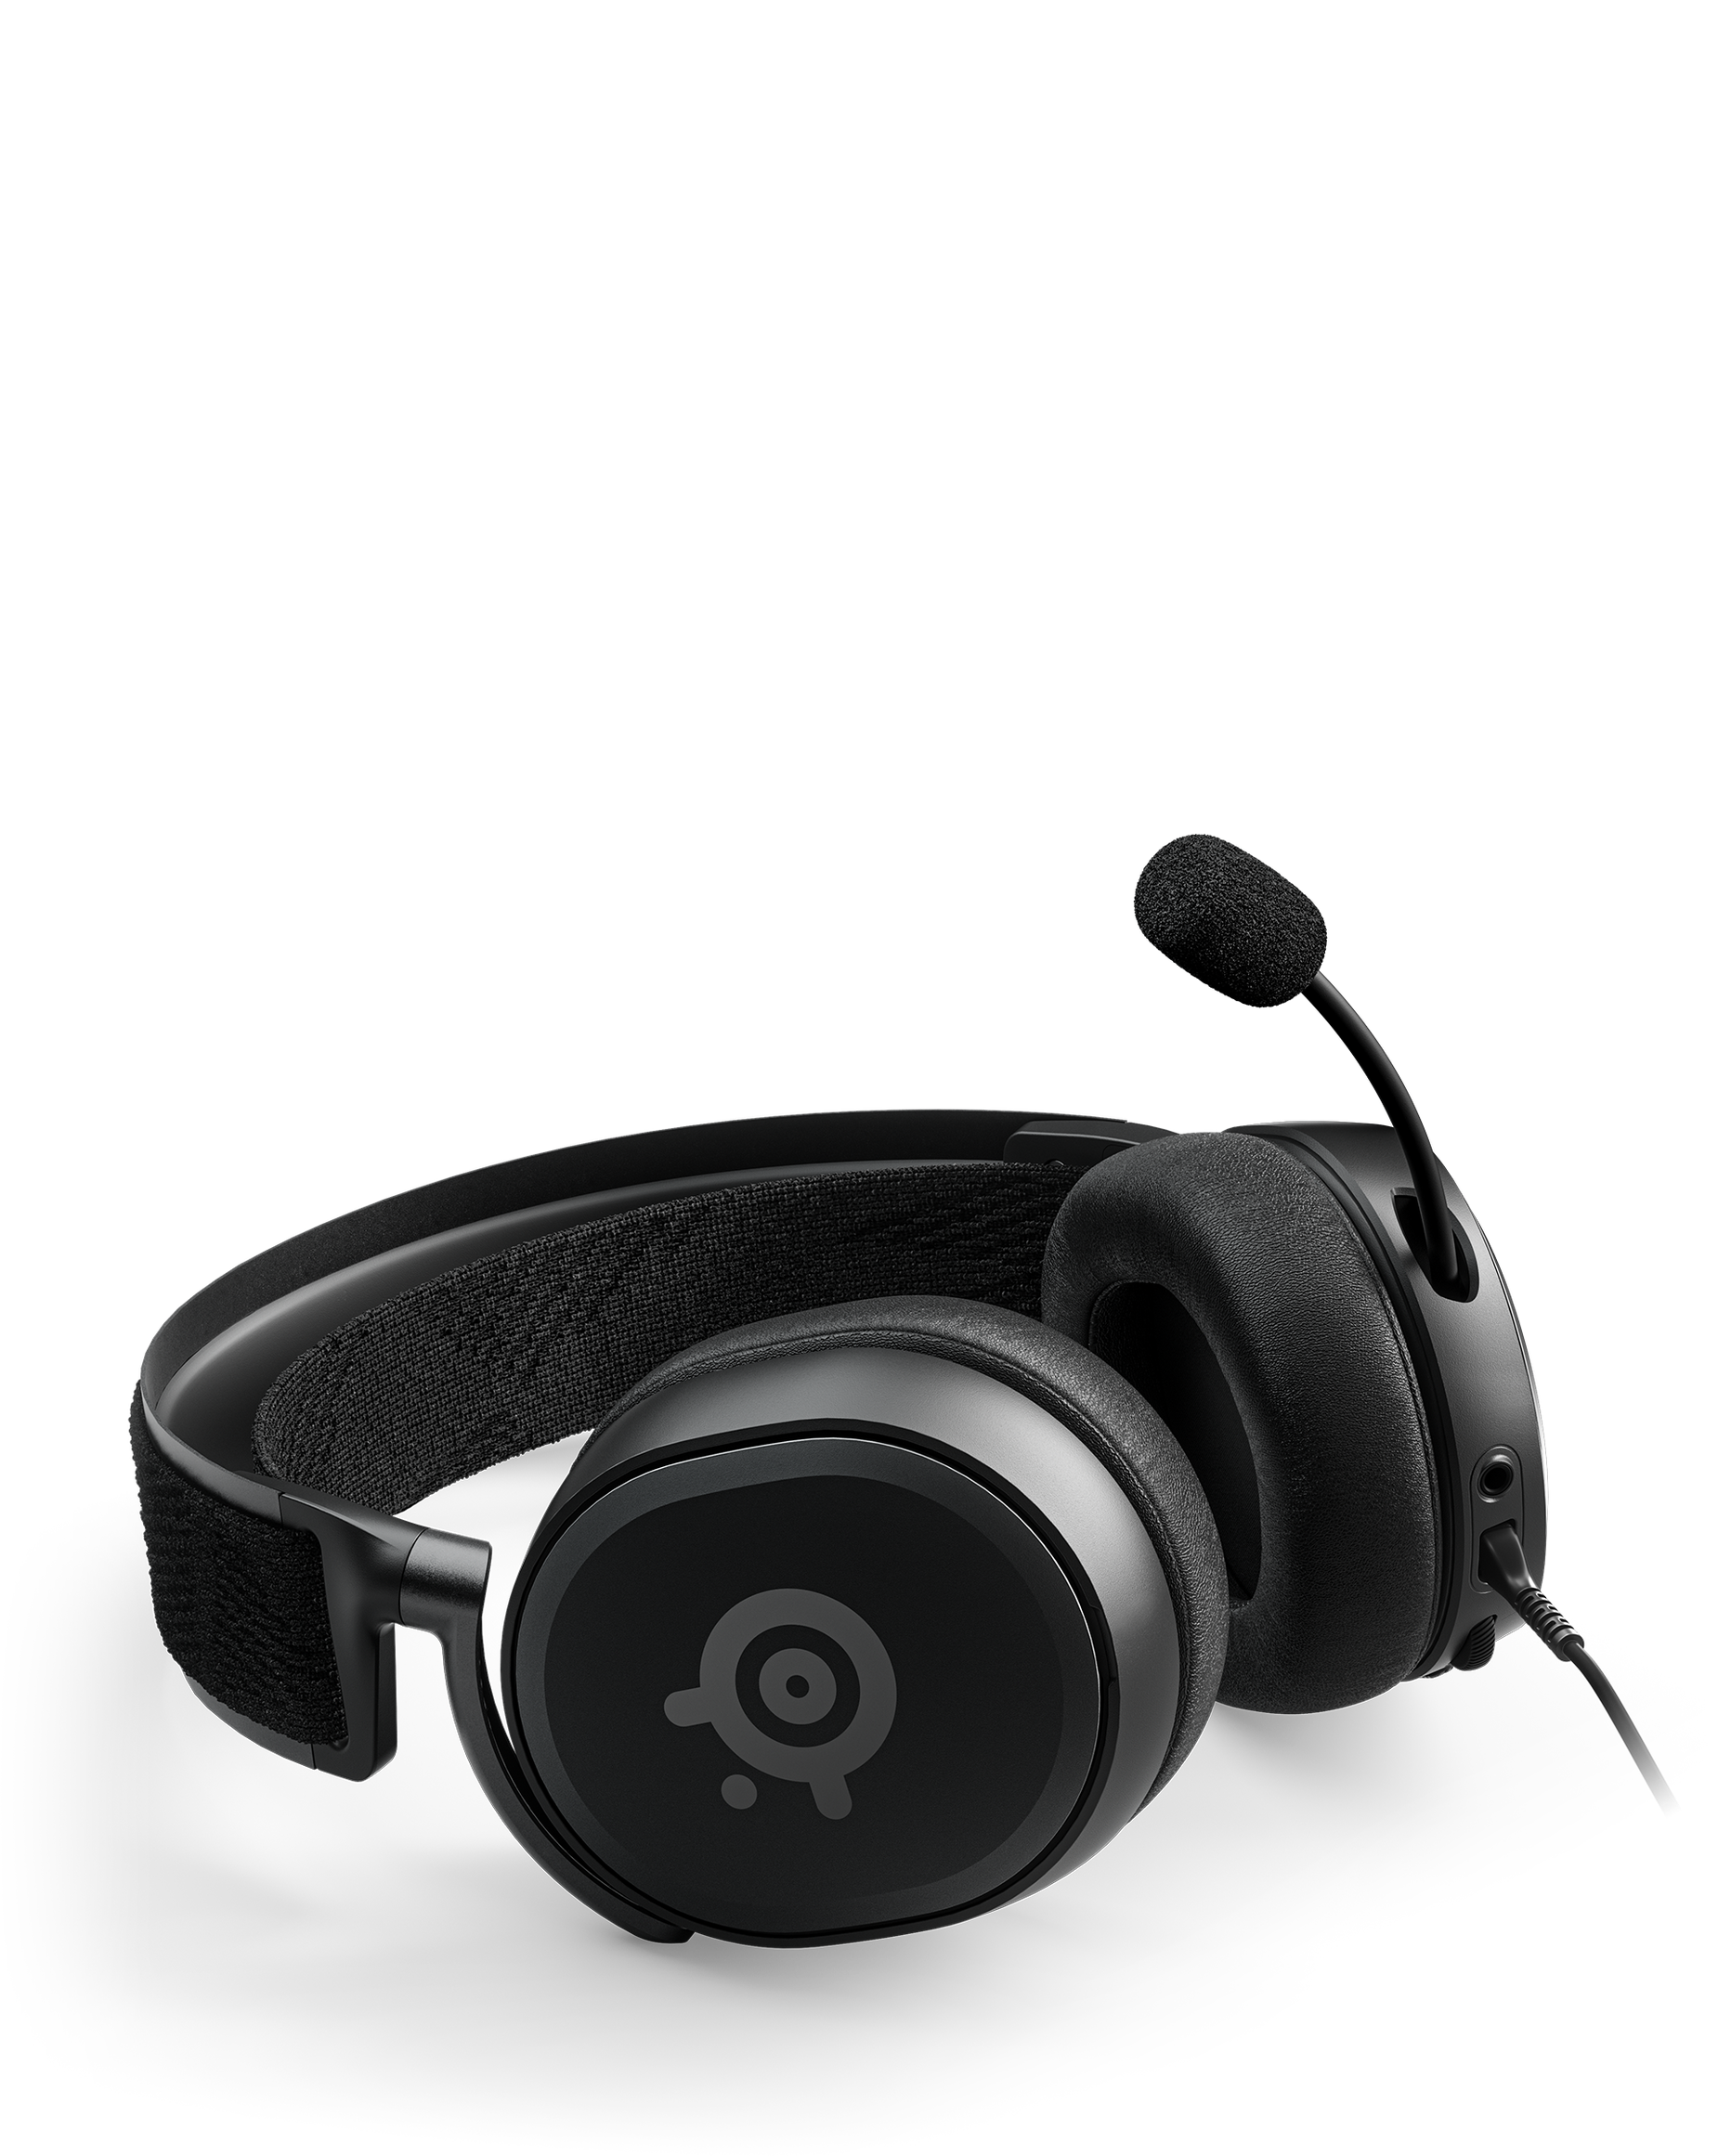 An Arctis Prime laying flat with the mic extended.